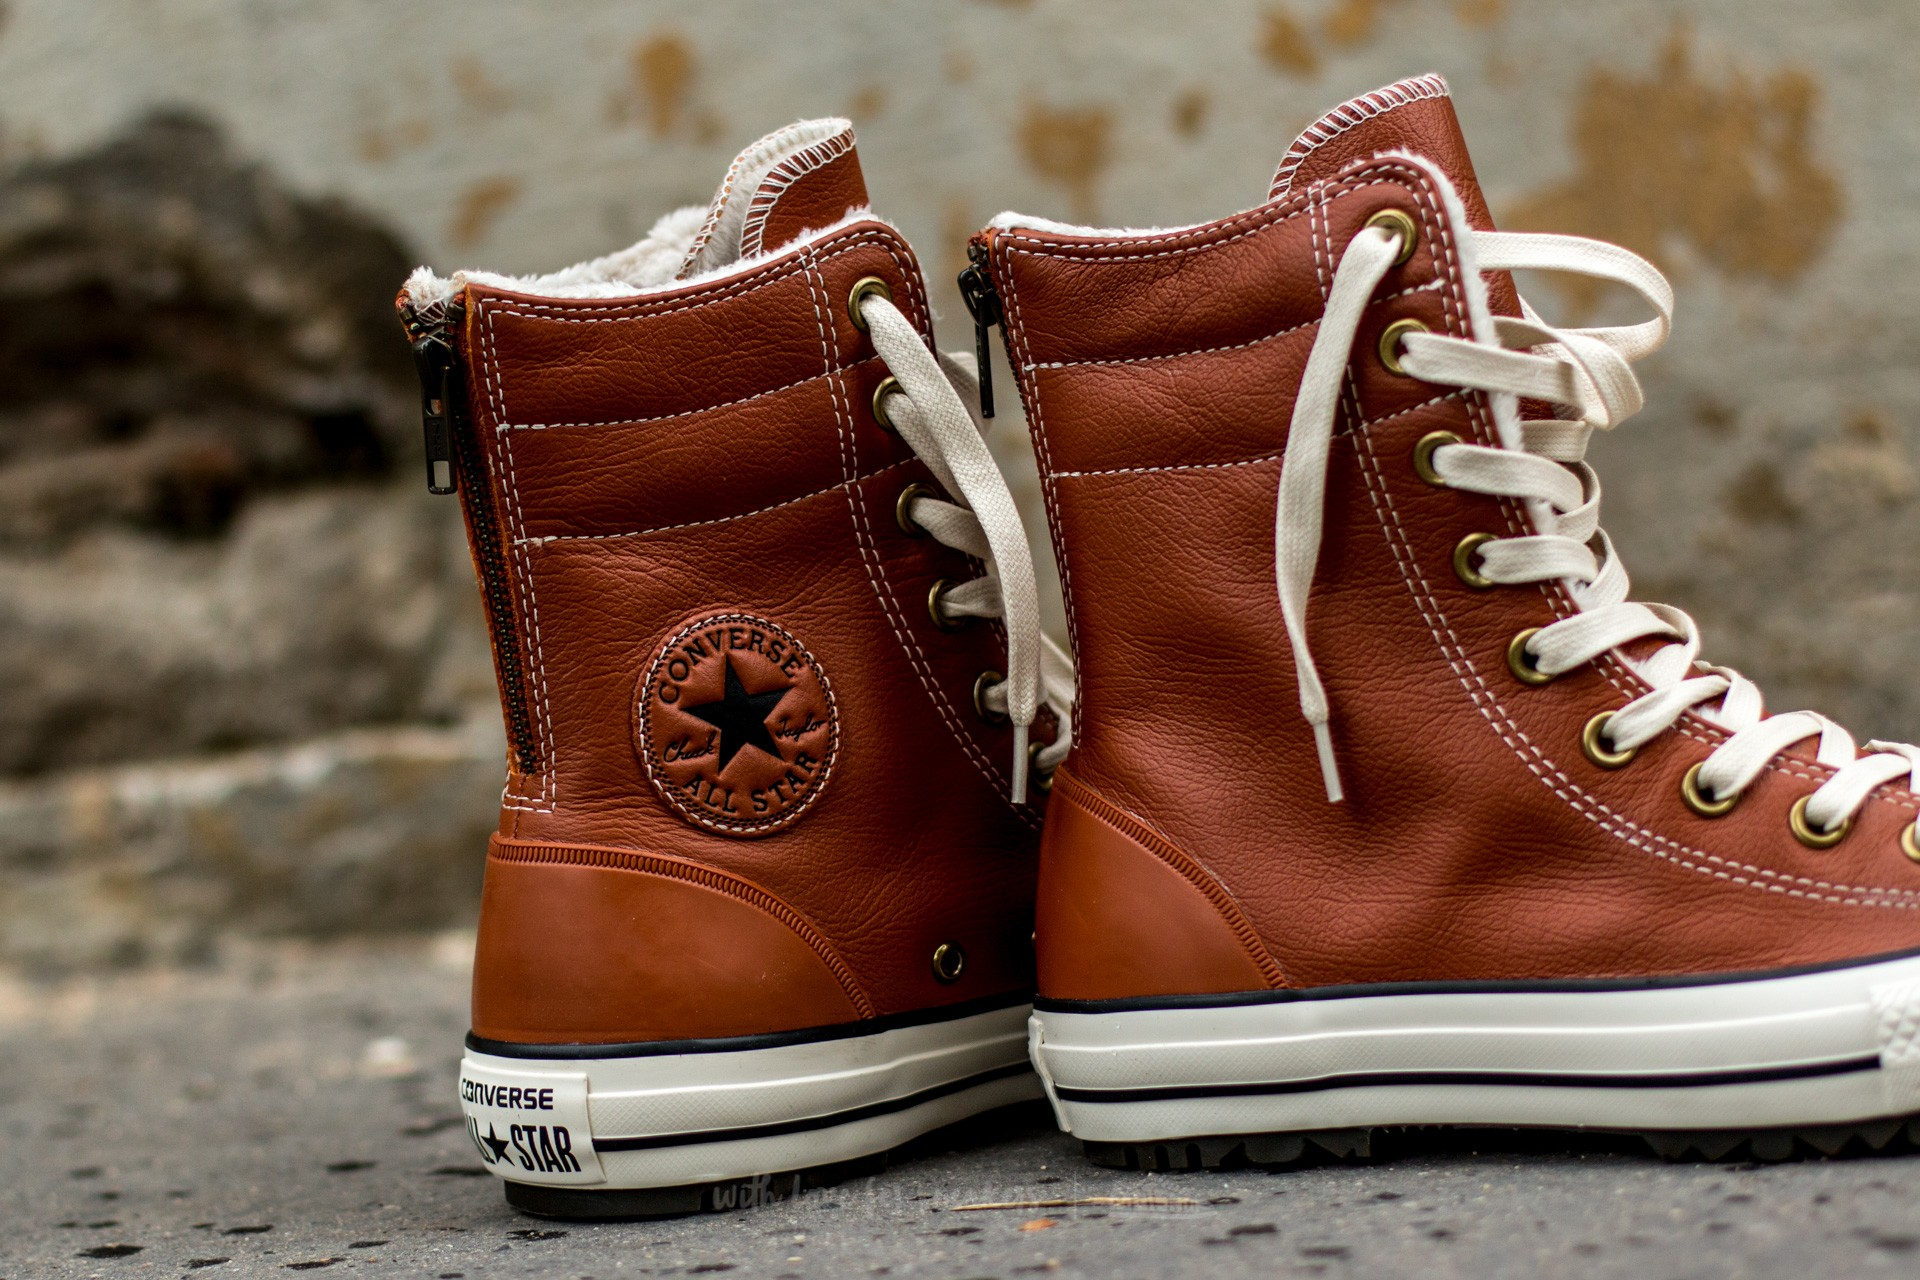 Converse Chuck Taylor All Star Hi Rise Boot Leather + Fur